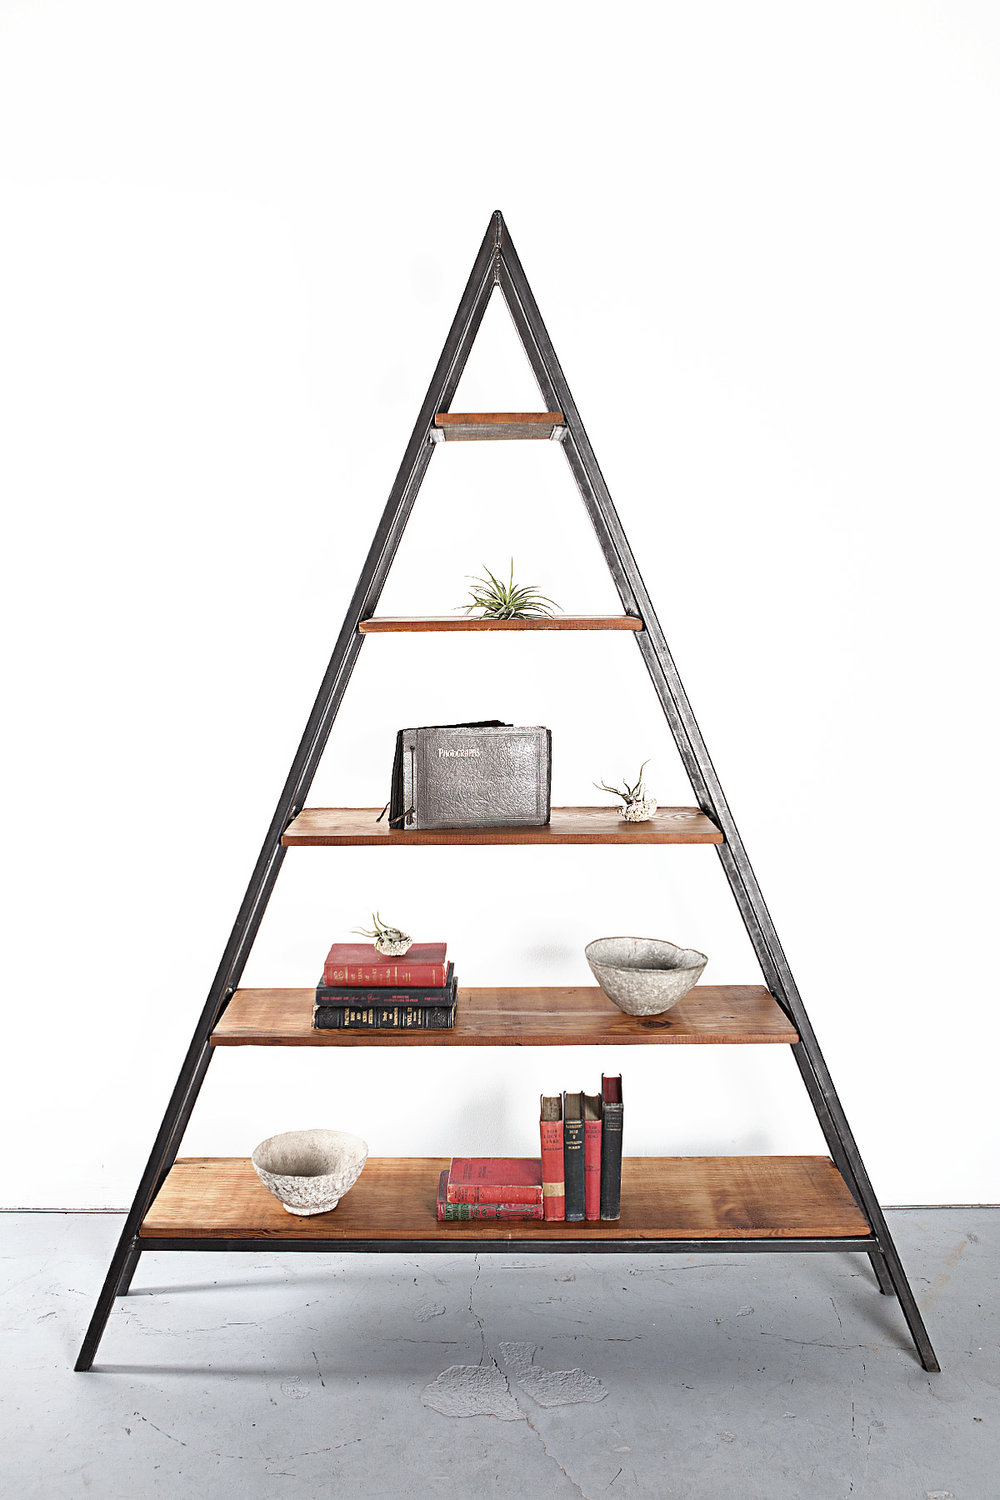 Custom Reclaimed Fir Triangle Shelf